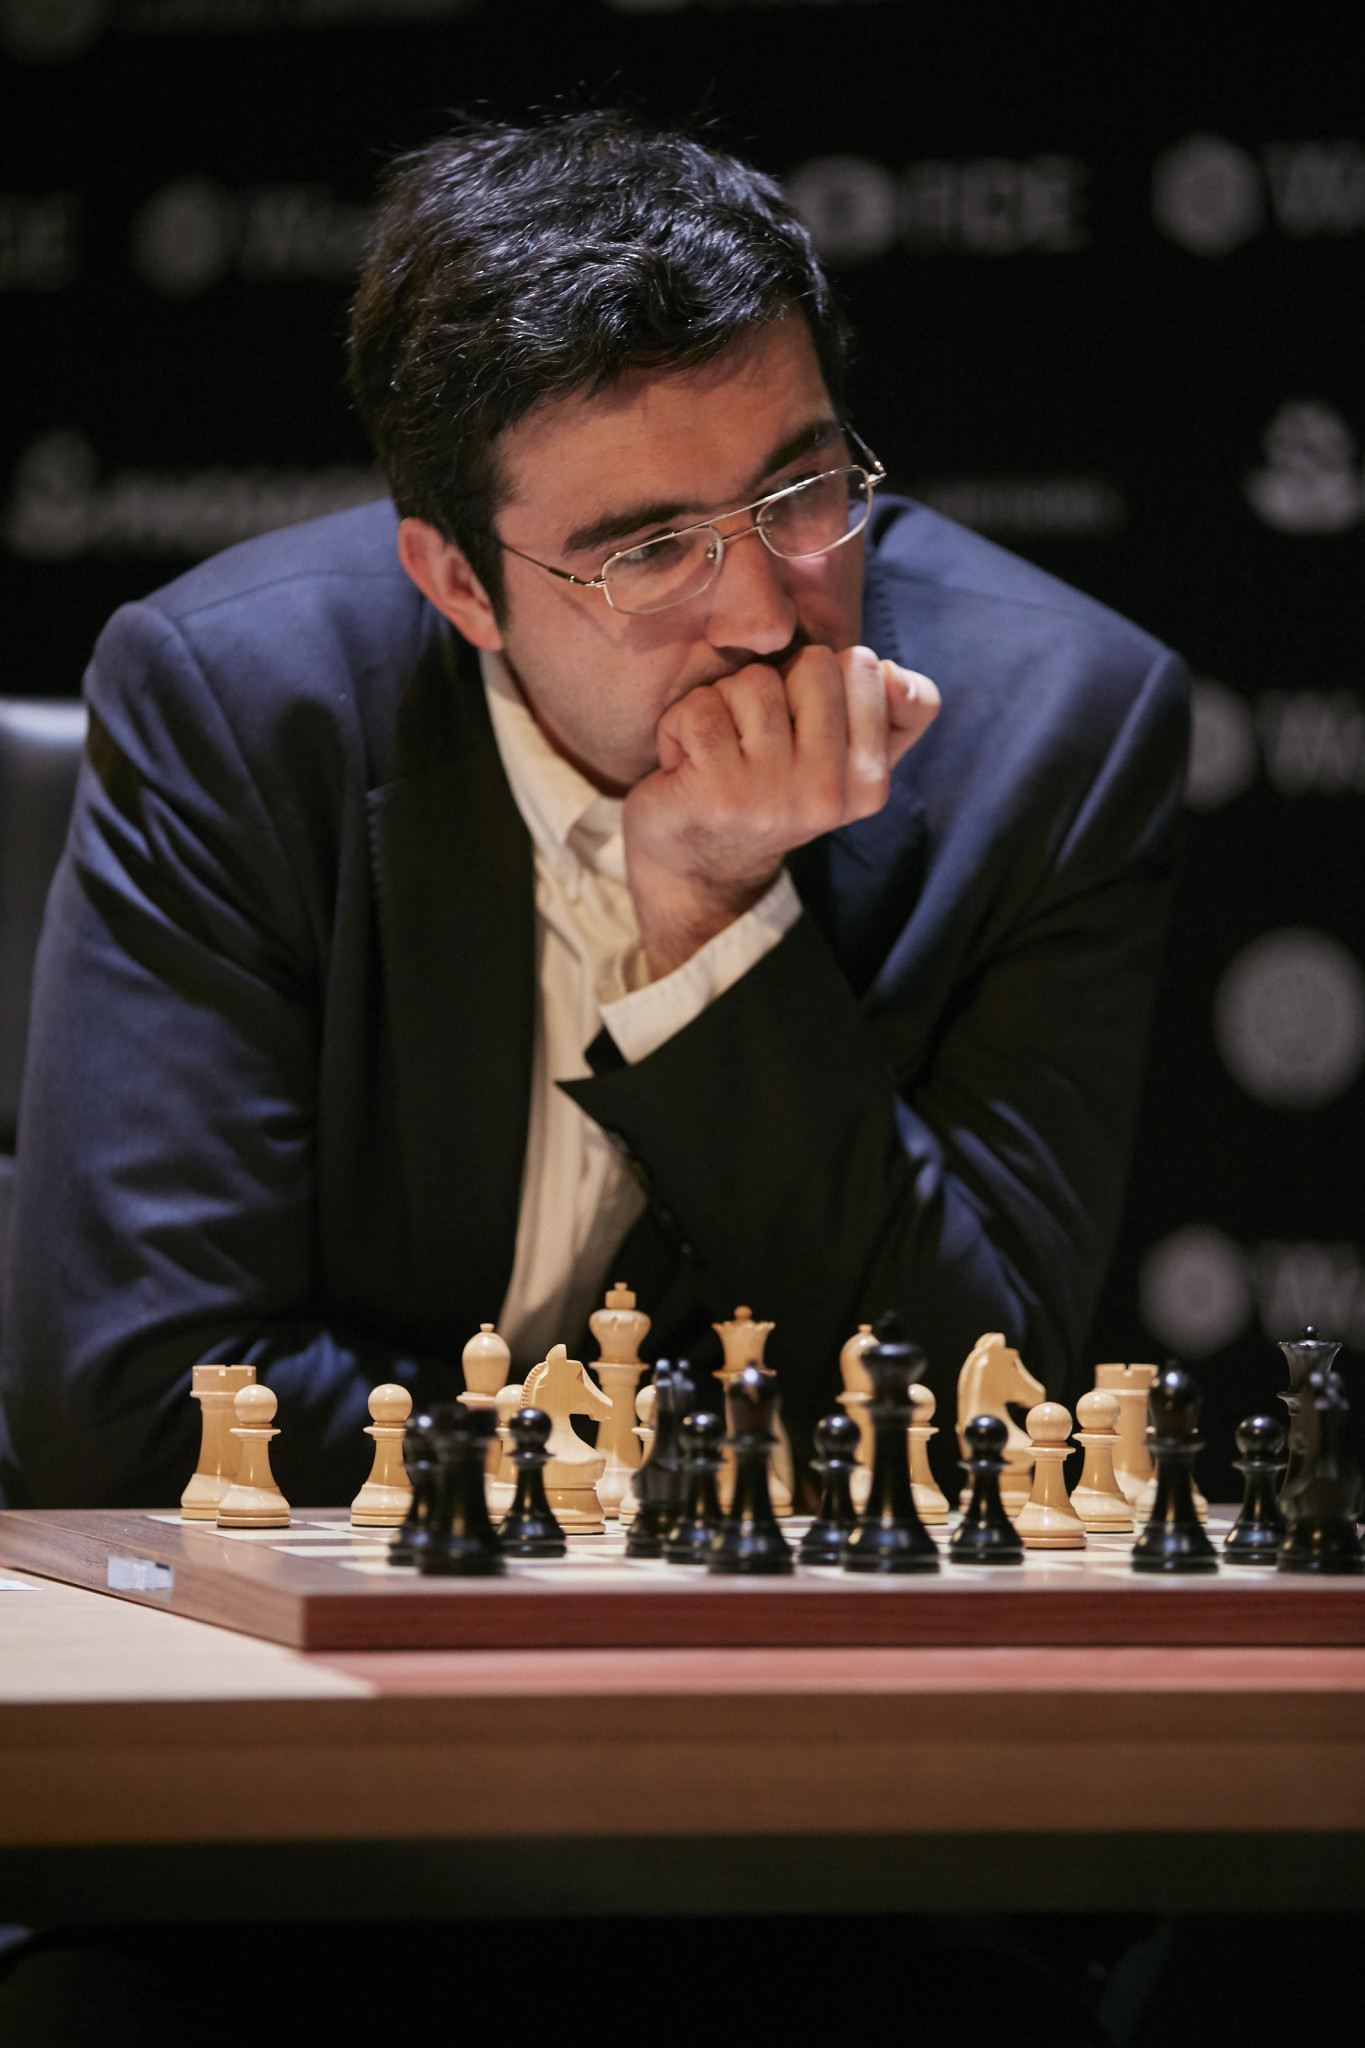 Russian wild card entry Vladimir Kramnik had an opening day victory at the FIDE Candidates Tournament for the right to challenge Norway's 27-year-old Magnus Carlsen for the world title underway in Berlin ©Getty Images